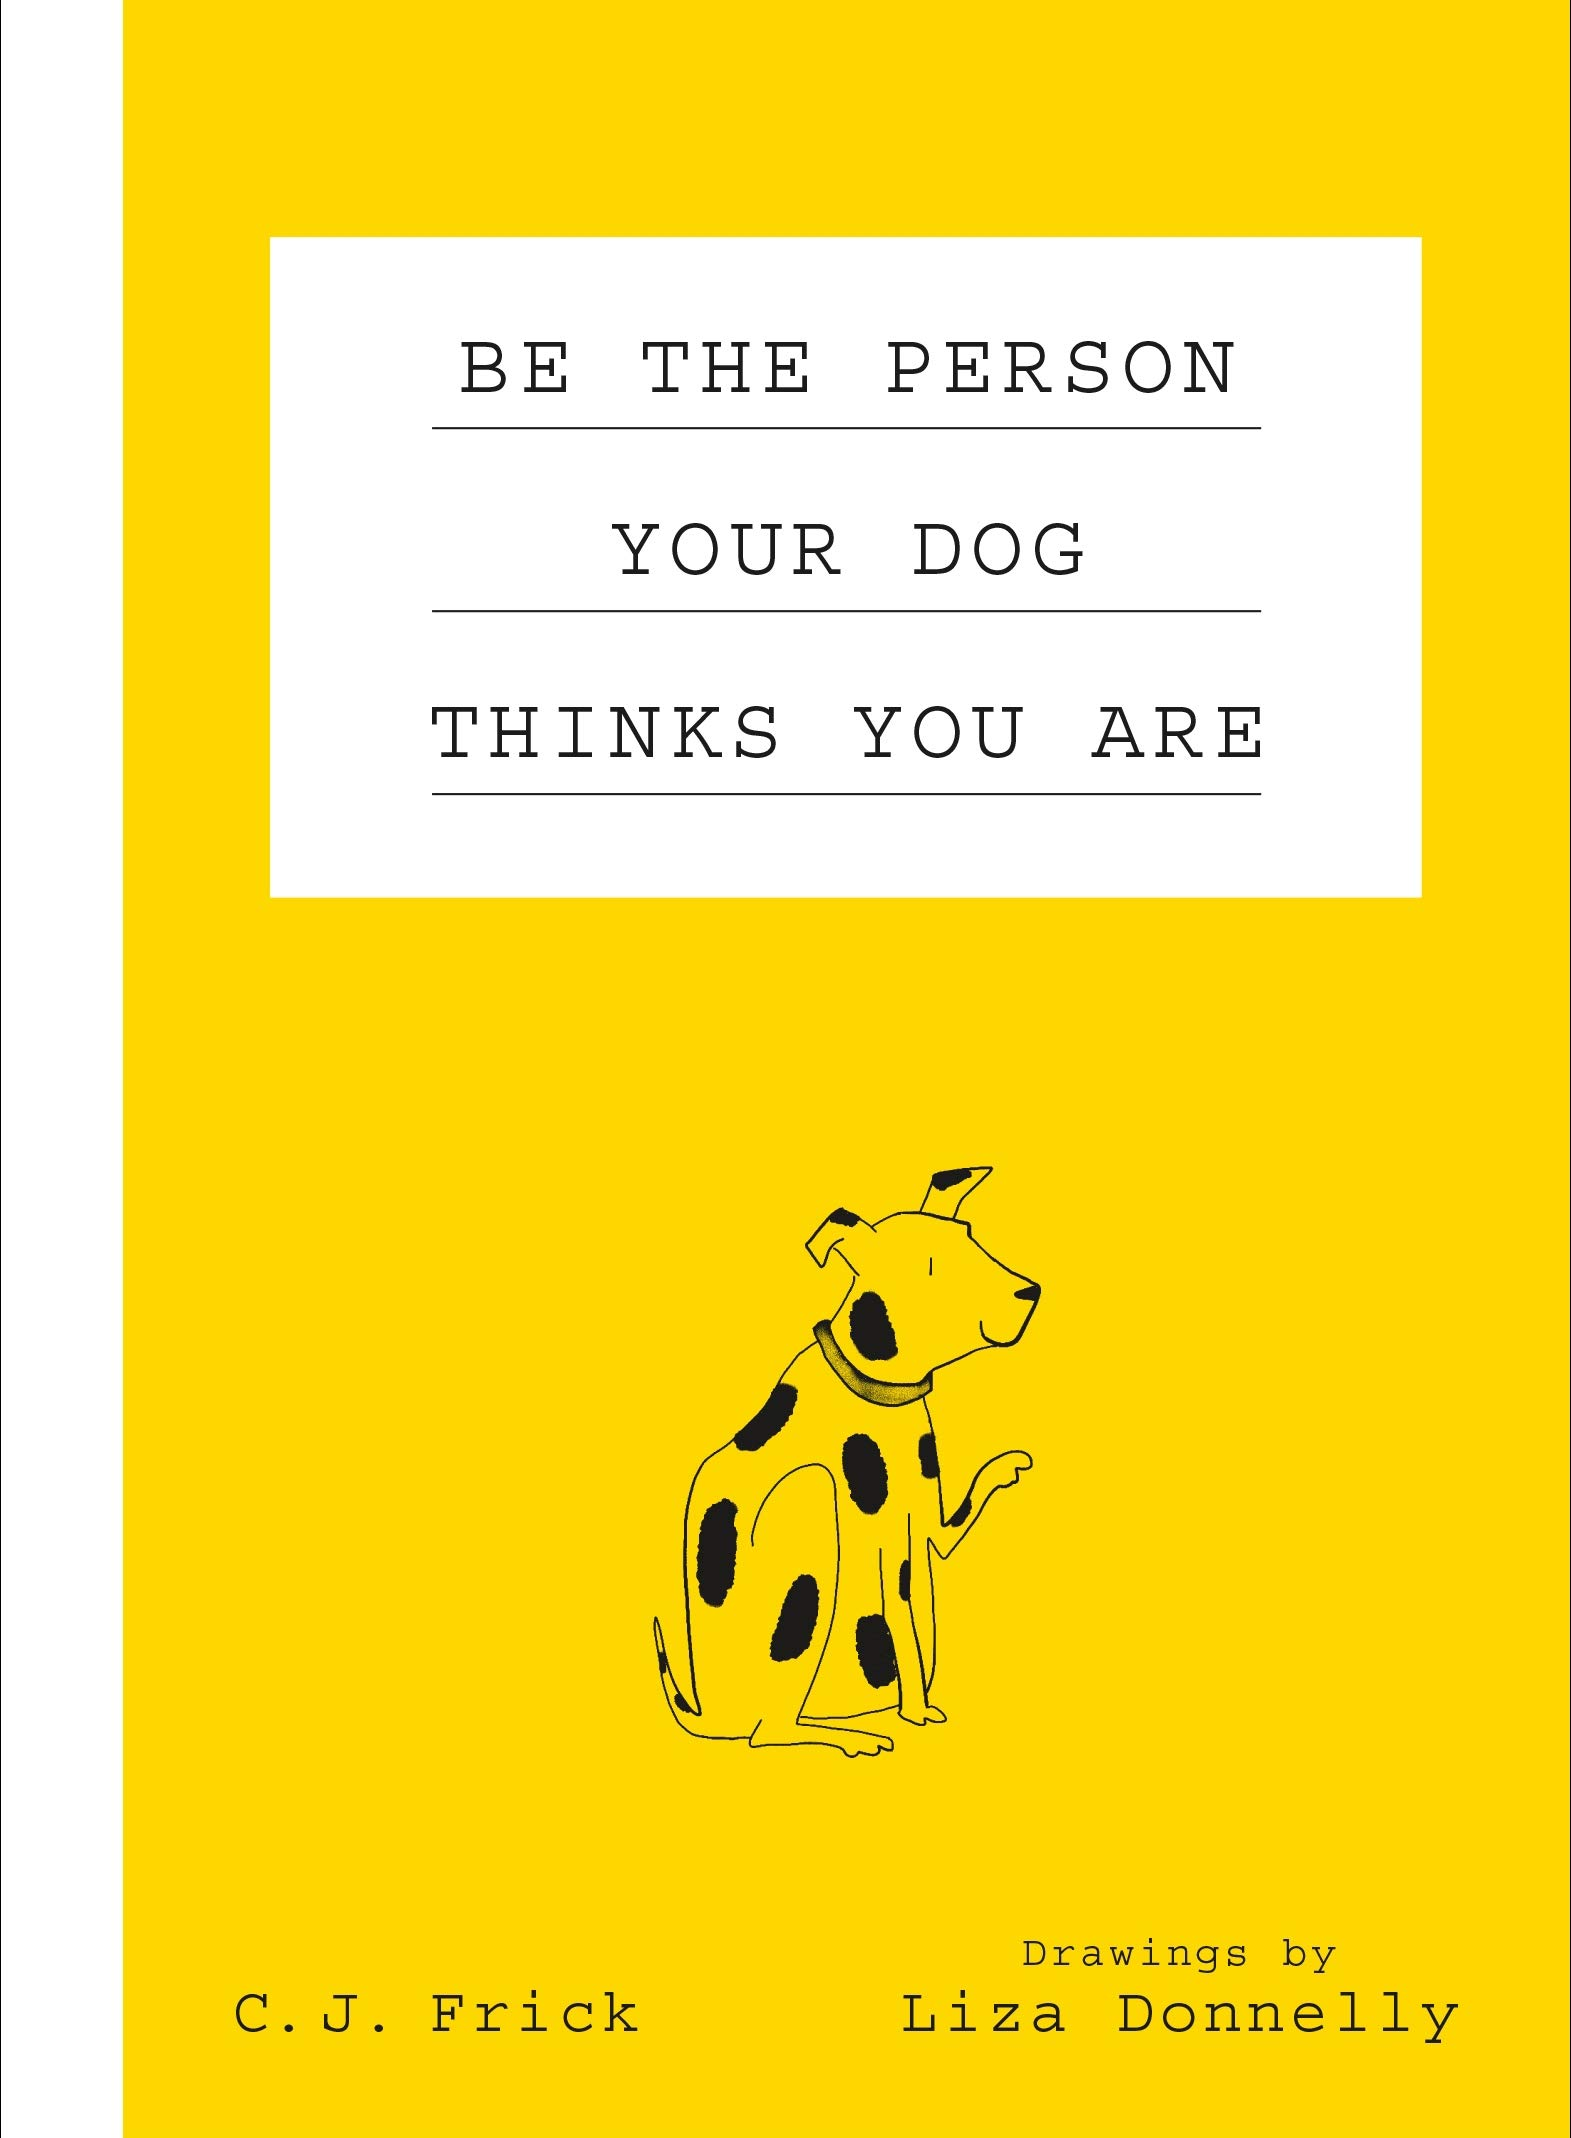 liza donnelly the new yorker cbs will discuss her life in cartoons and her latest book project partnering with author c j frick on be the person your